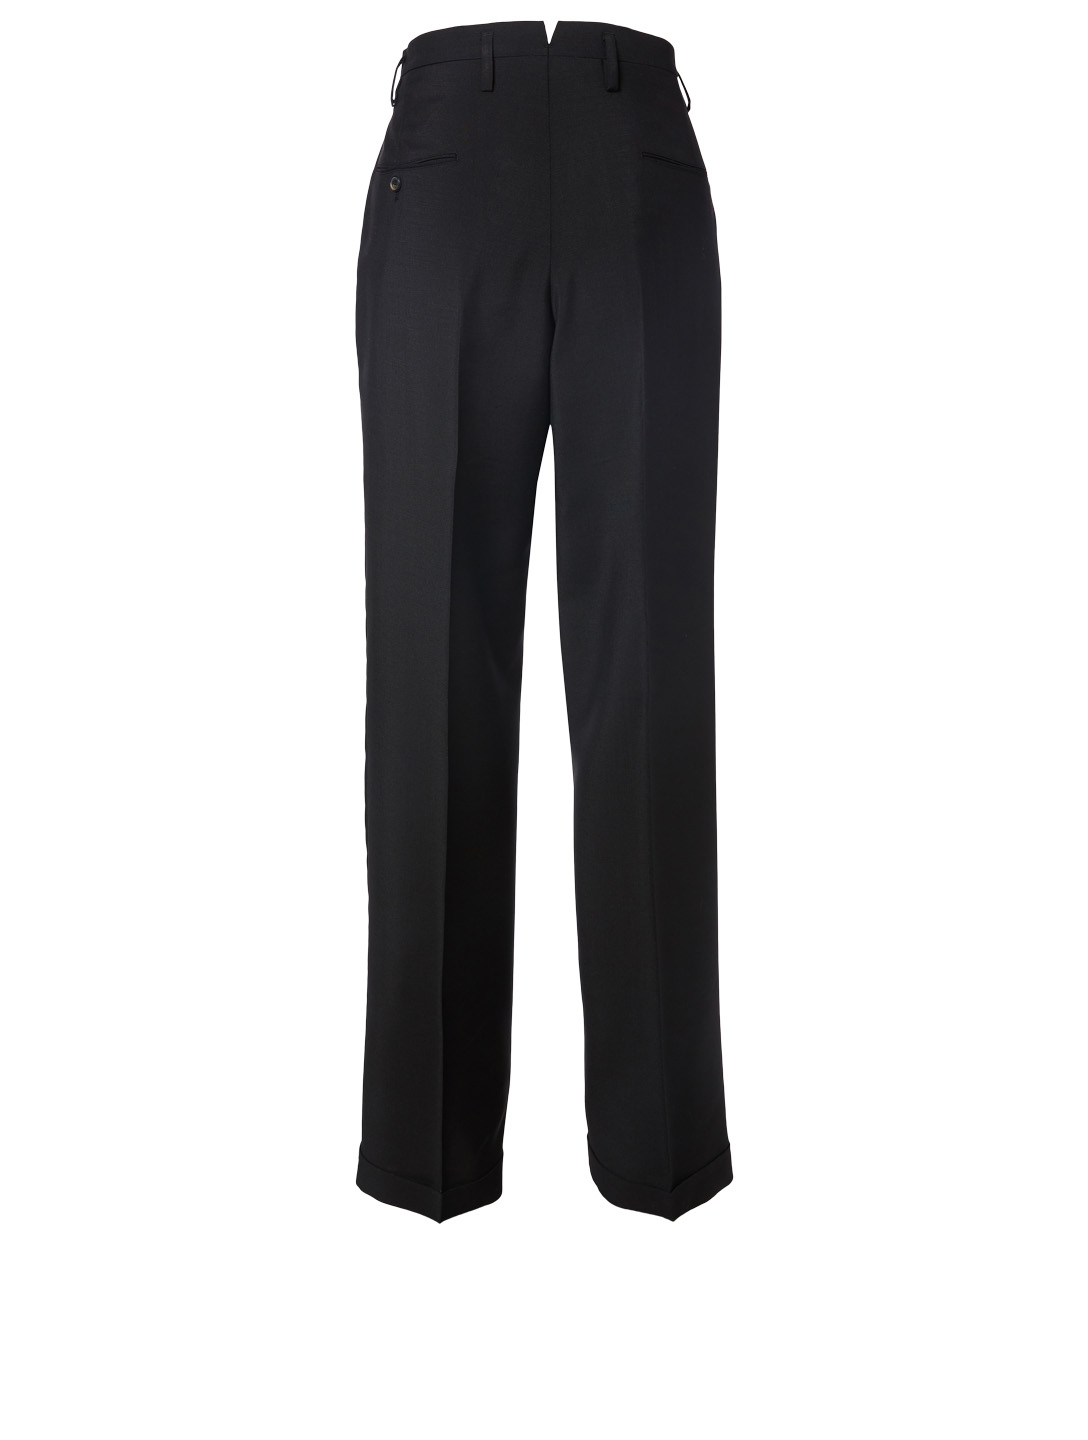 MAISON MARGIELA Mohair And Wool Tailored Pants Women's Black